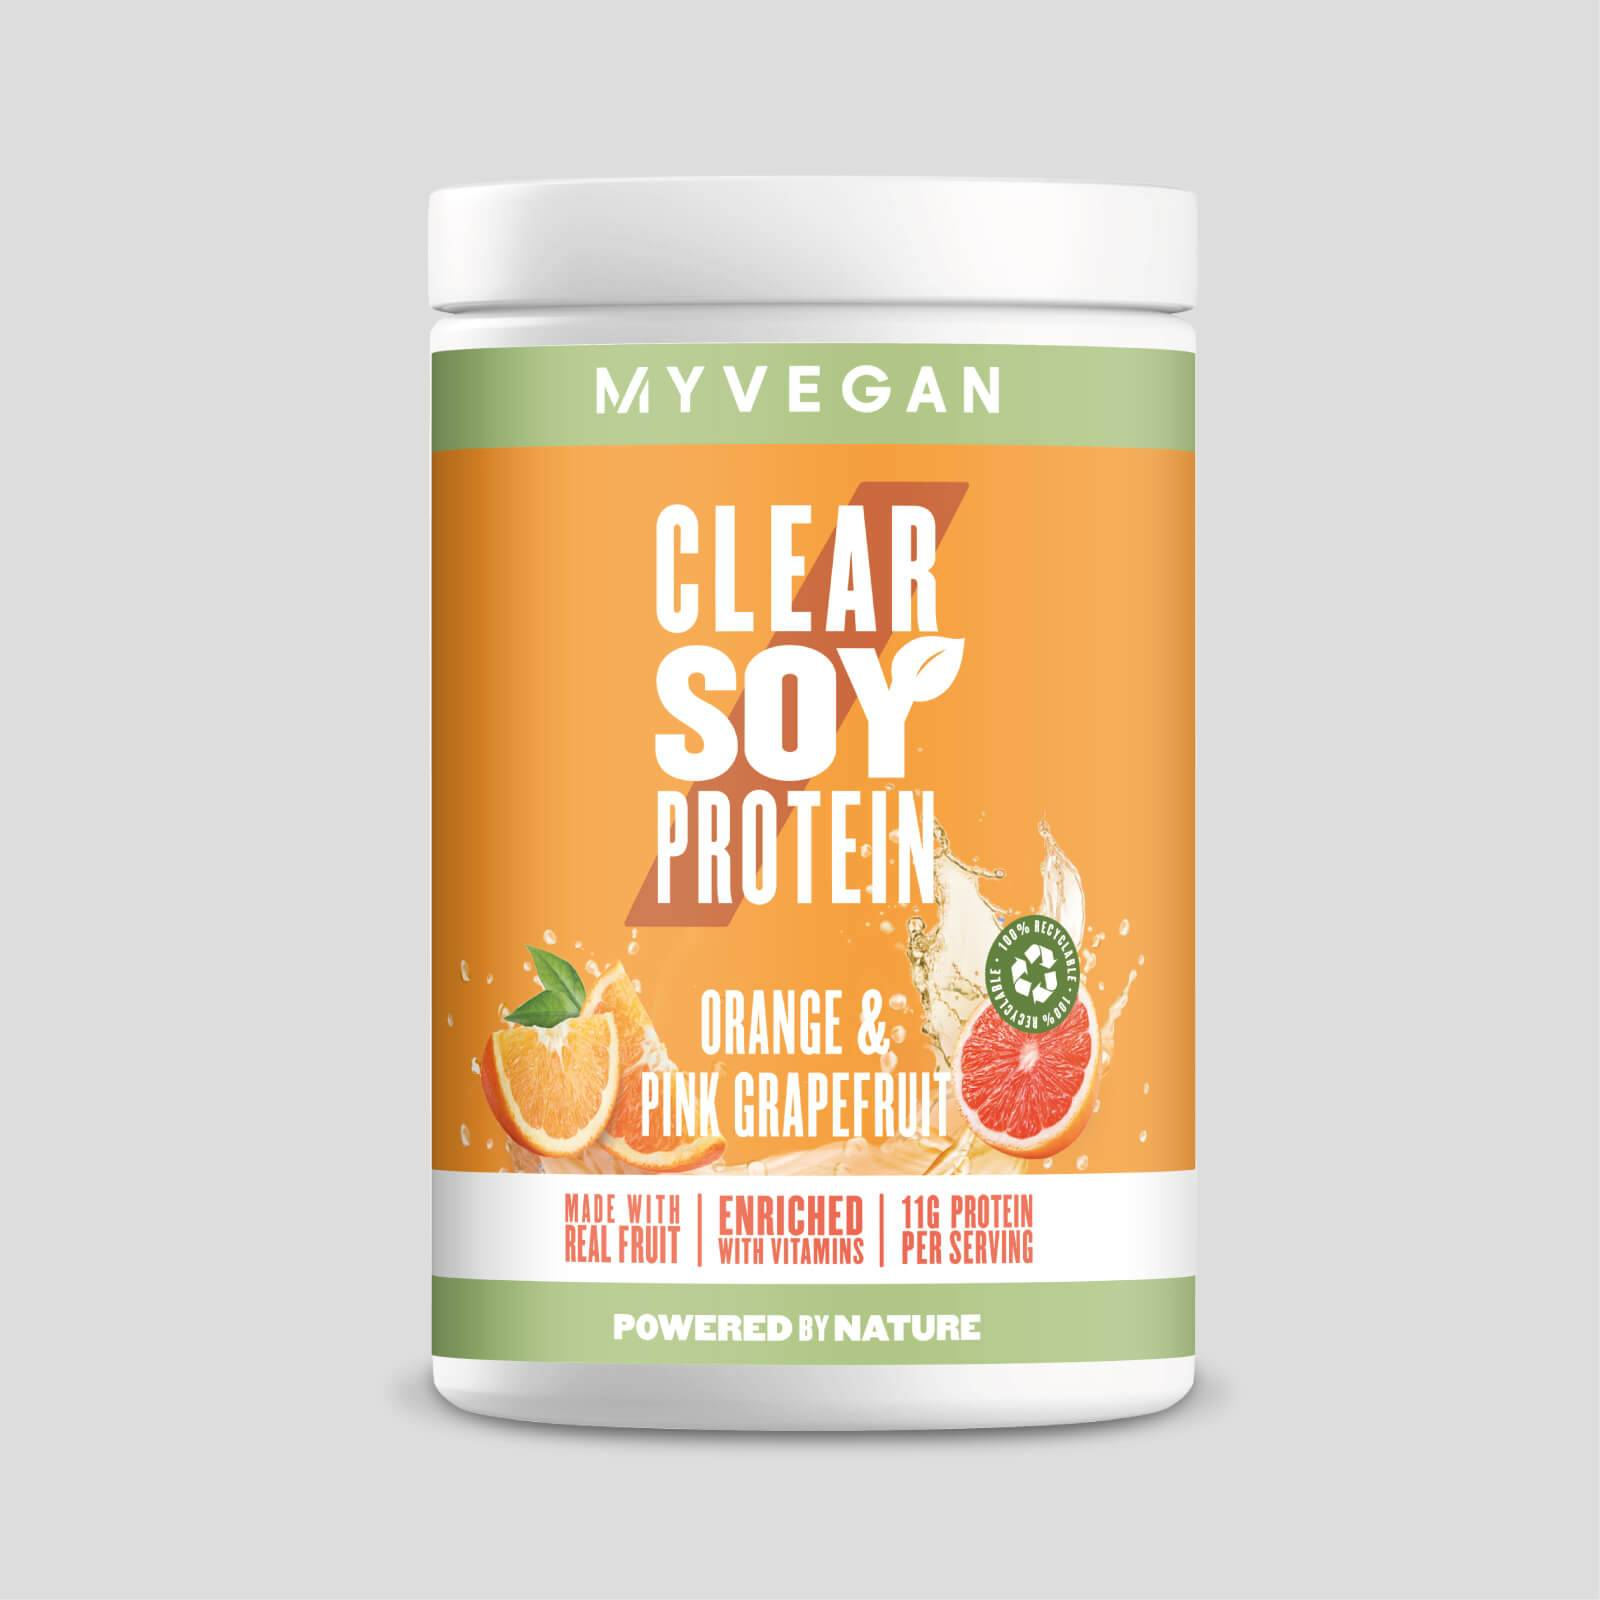 Myprotein Clear Soy Protein - 340g - Orange and Pink Grapefruit